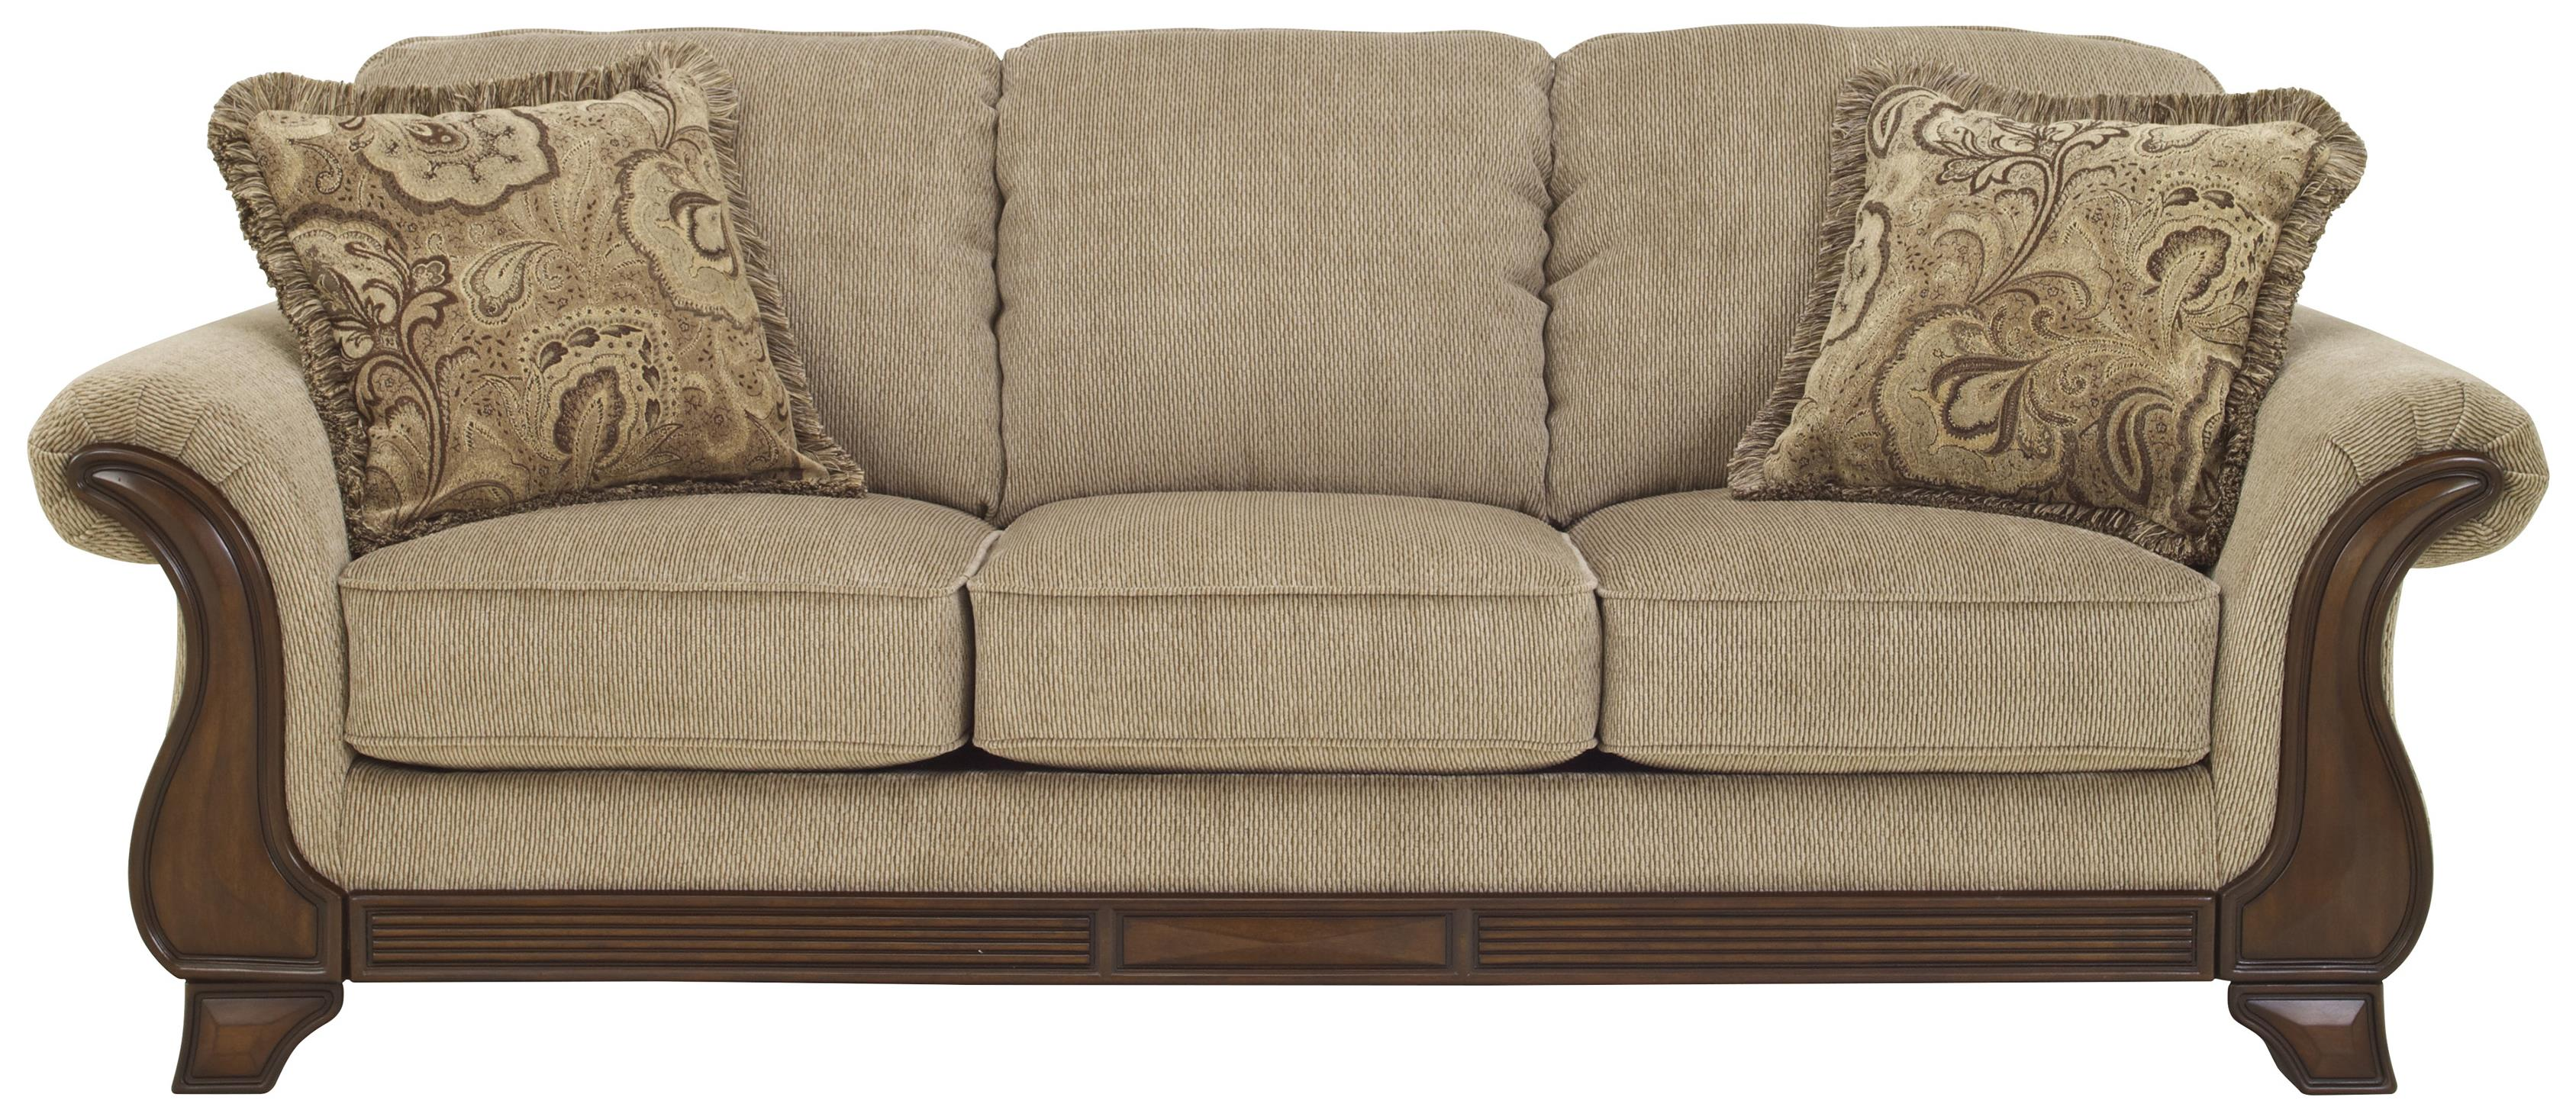 Lanett Sofa by Signature Design by Ashley at Zak's Warehouse Clearance Center